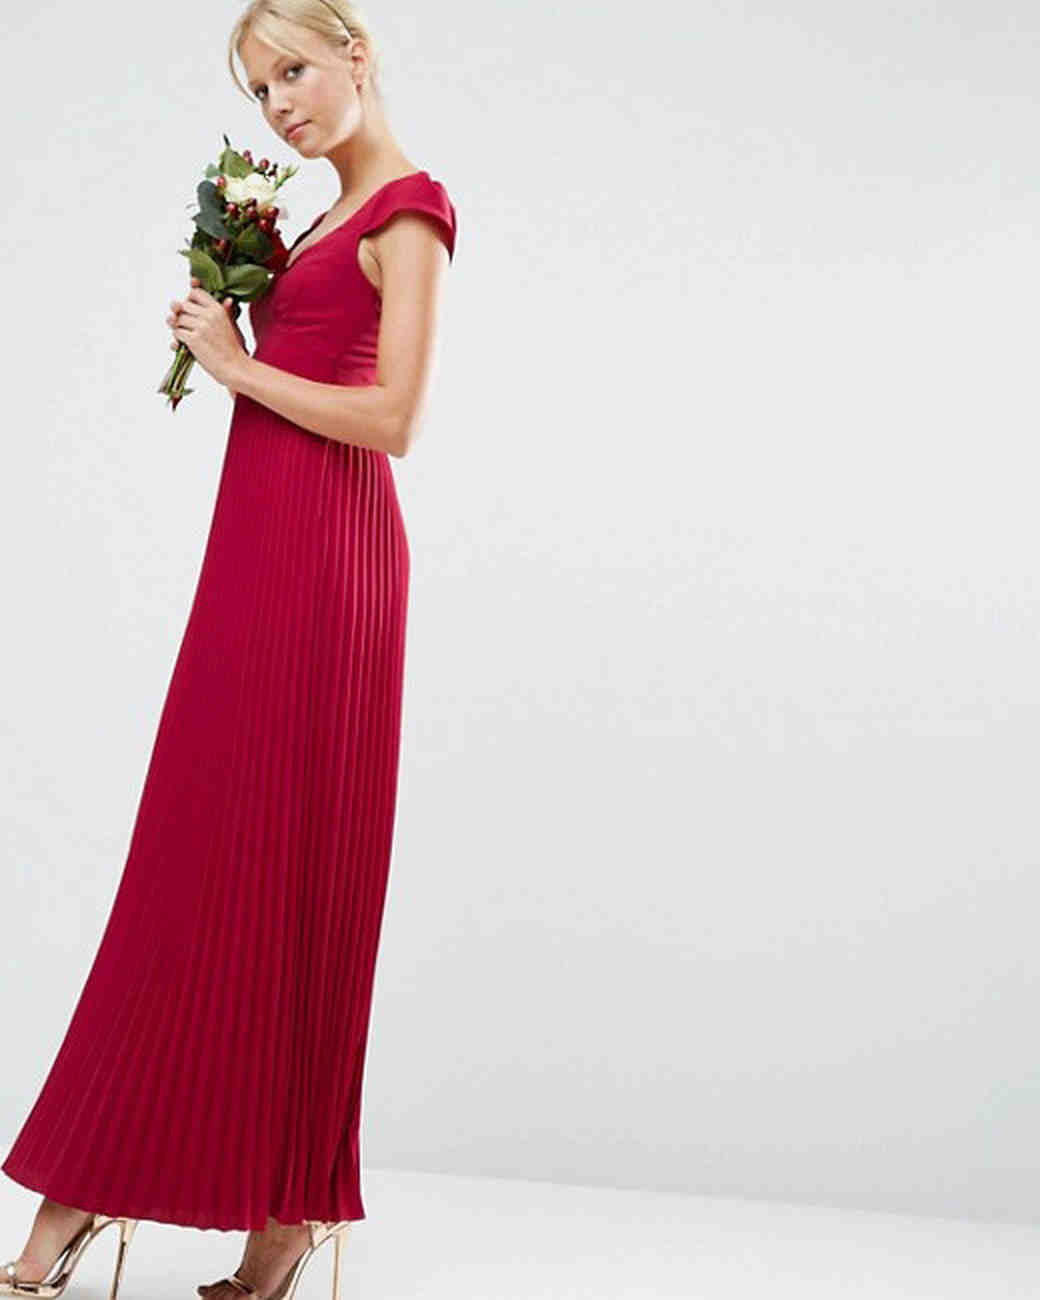 Red bridesmaid dresses martha stewart weddings ombrellifo Choice Image